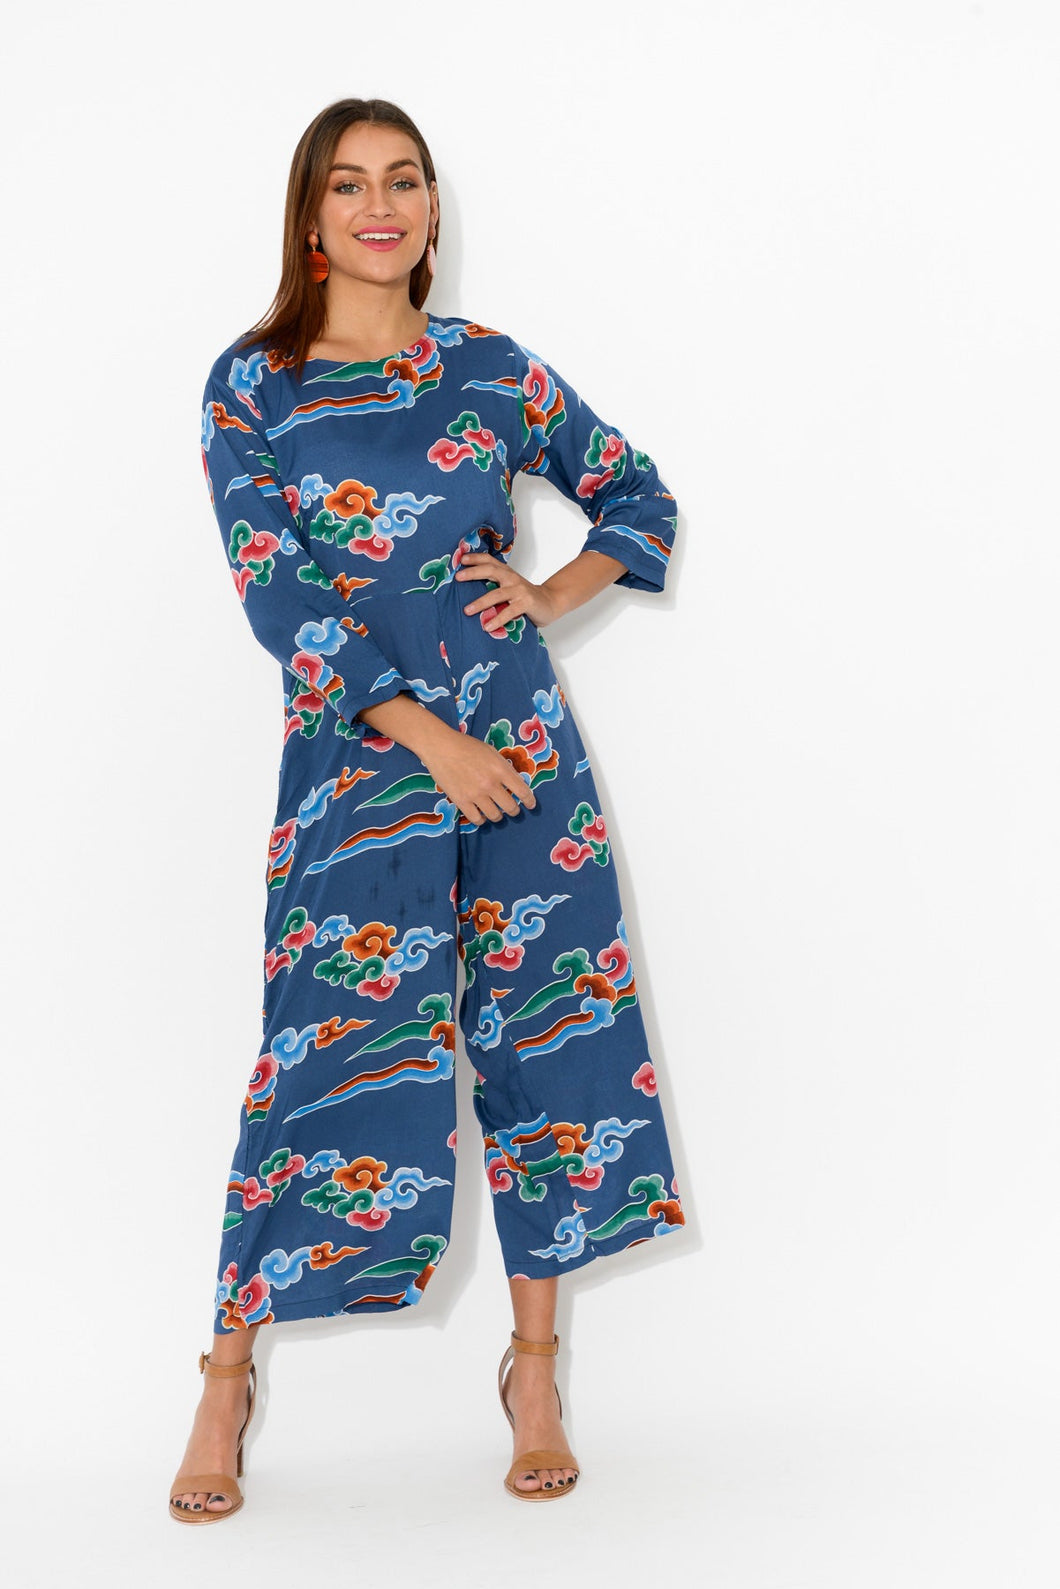 Luna Navy Clouds Jumpsuit - Honeysuckle Beach - Blue Bungalow Online